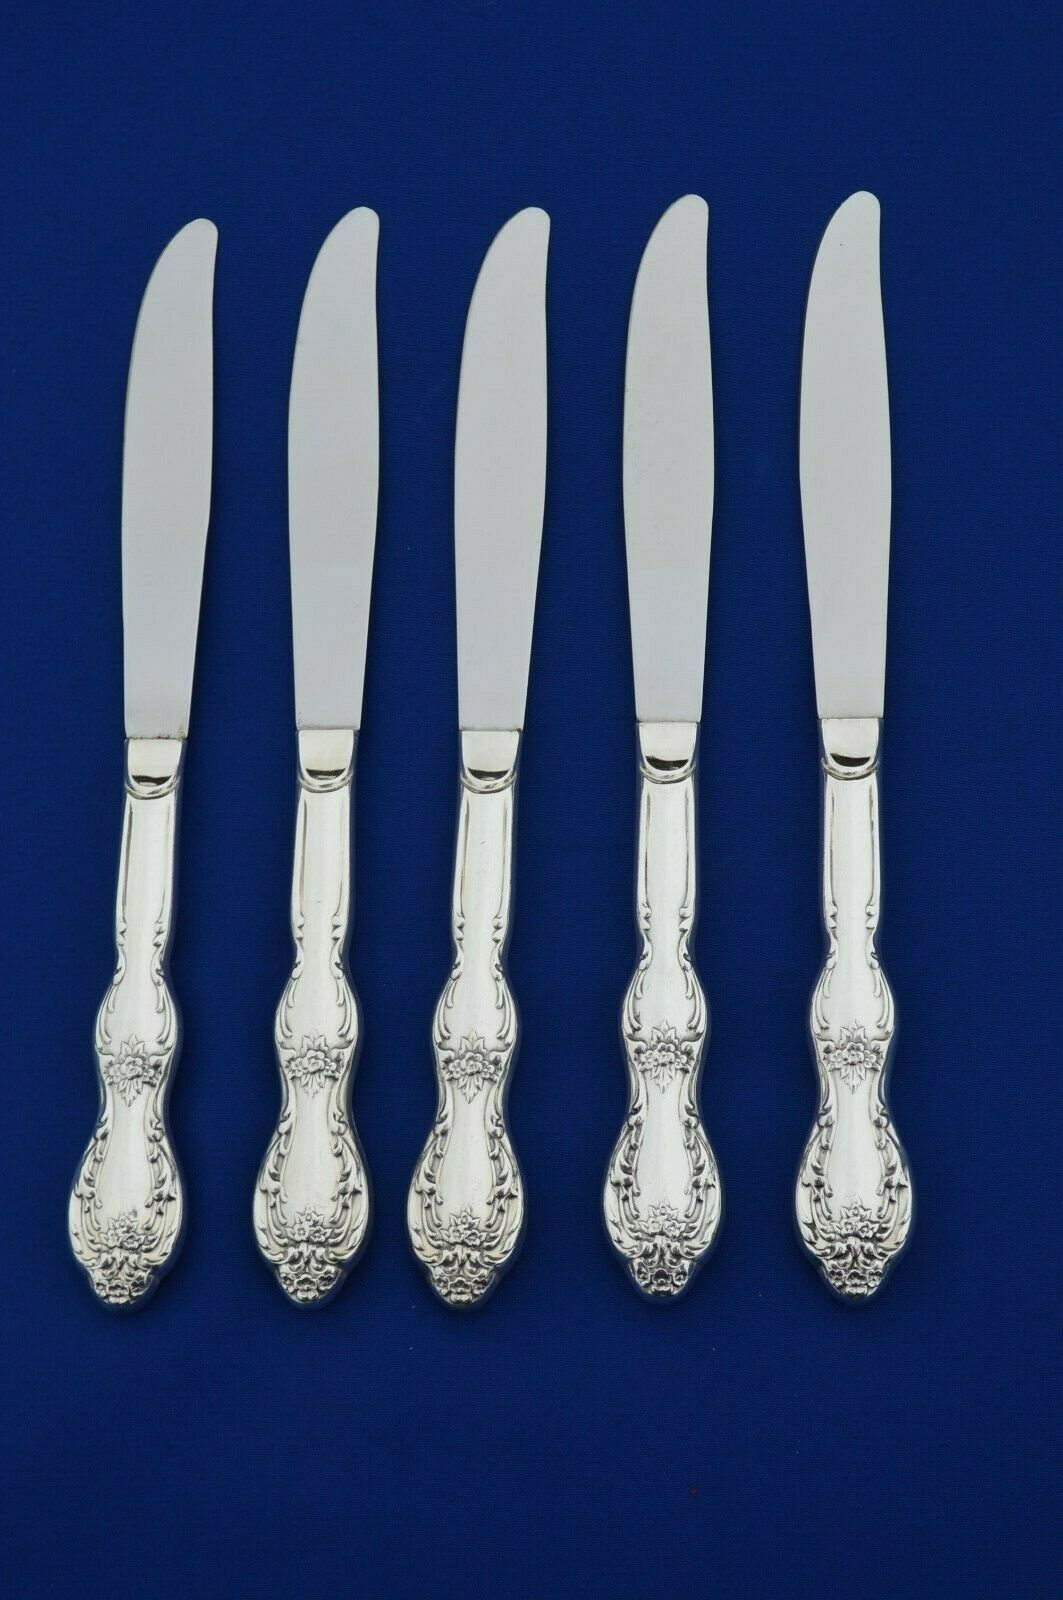 Primary image for Wm Rogers IS Beverly Manor 1964 Set of 5 Dinner Knives